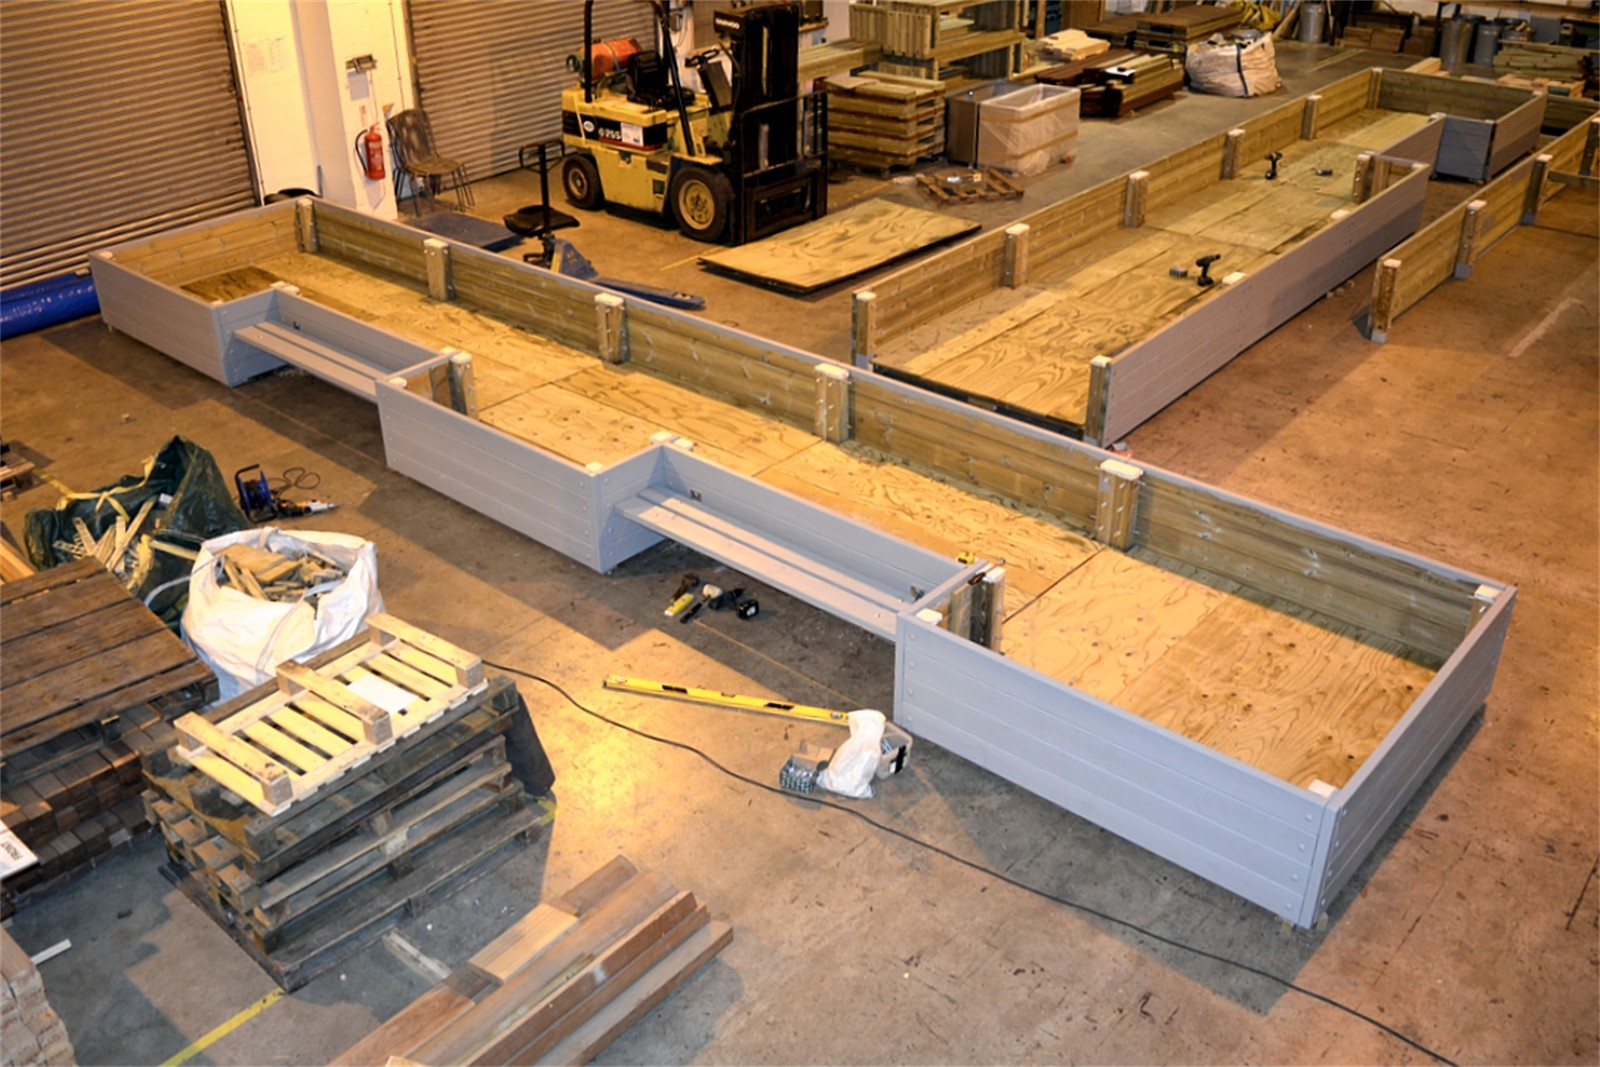 41pgr21 - Large Grenadier planter in manufacture